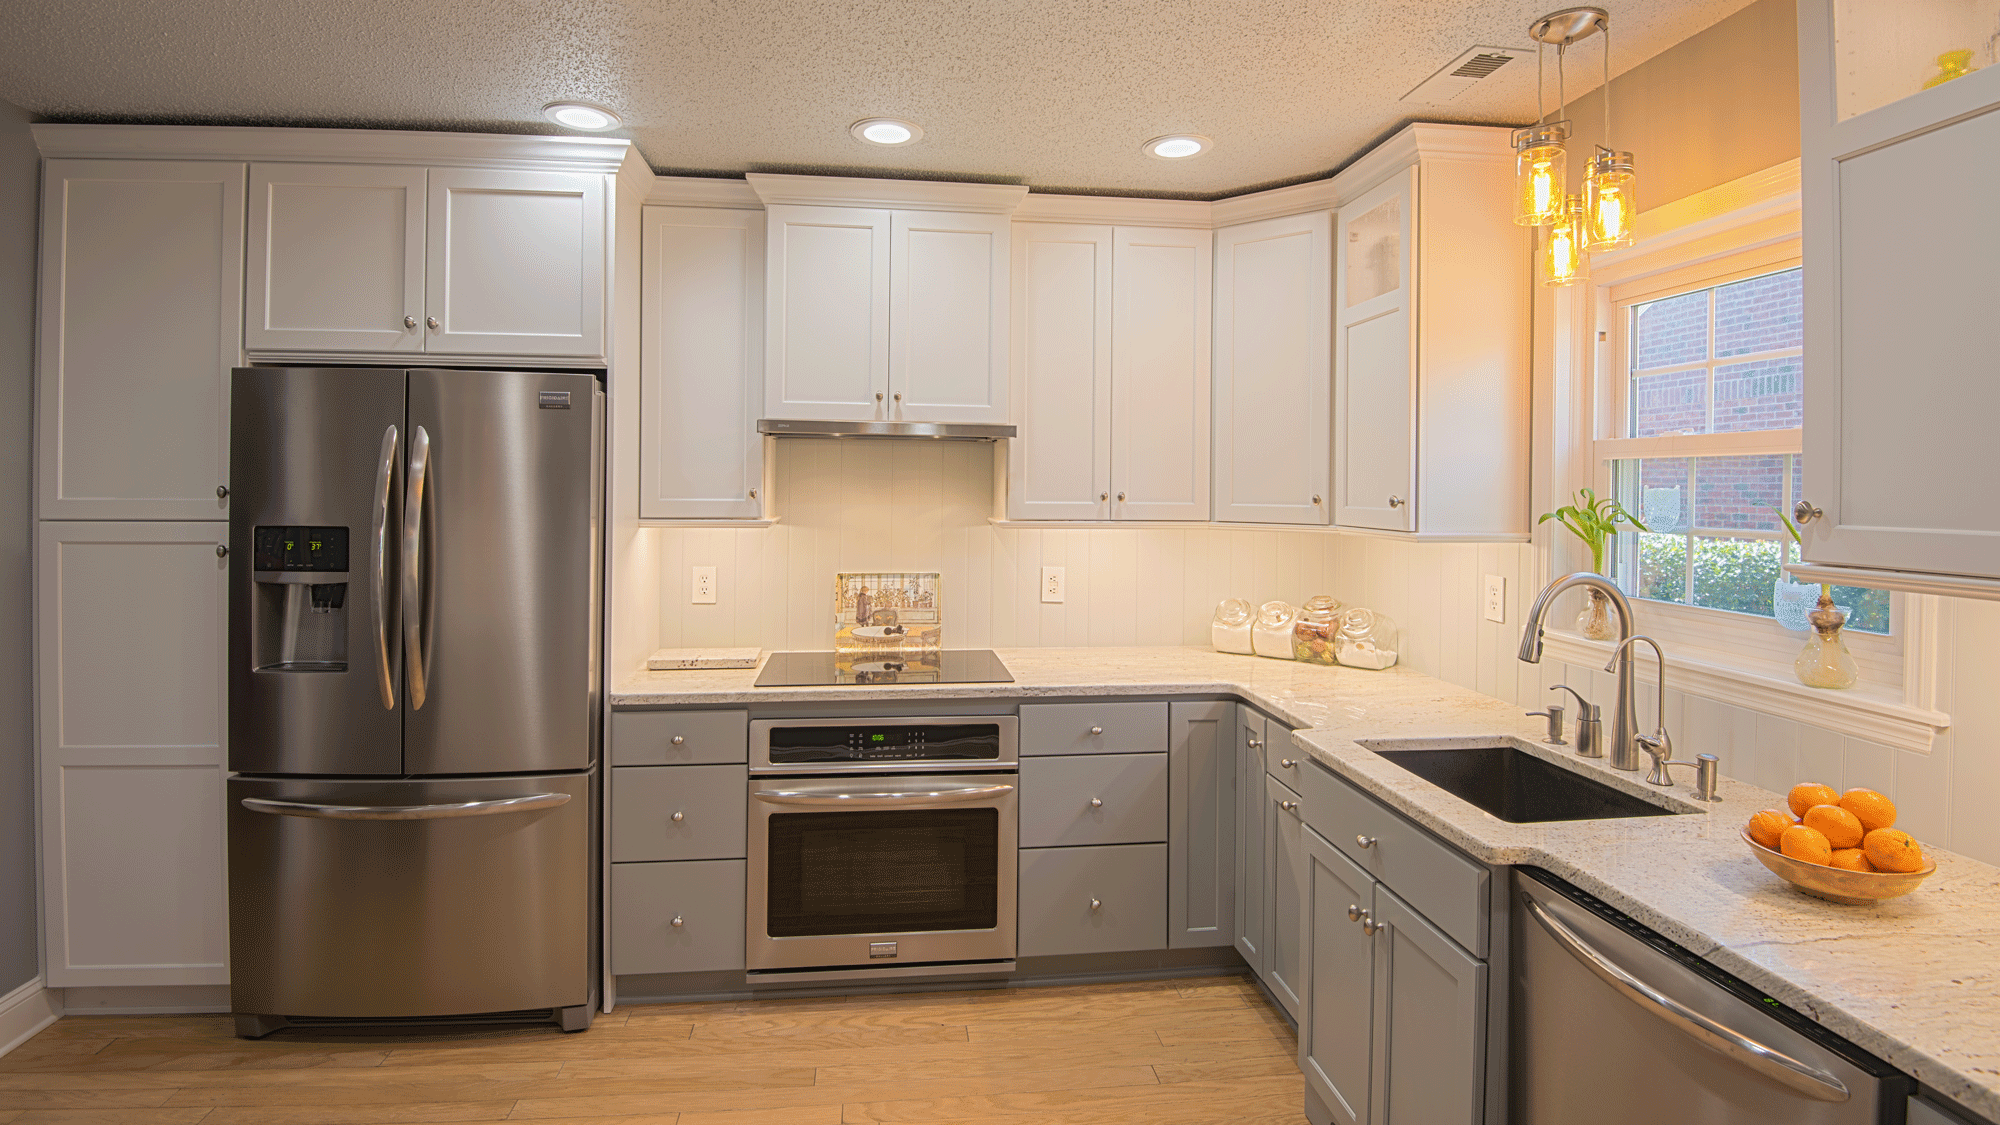 kitchen remodel with cabinets and recessed lighting